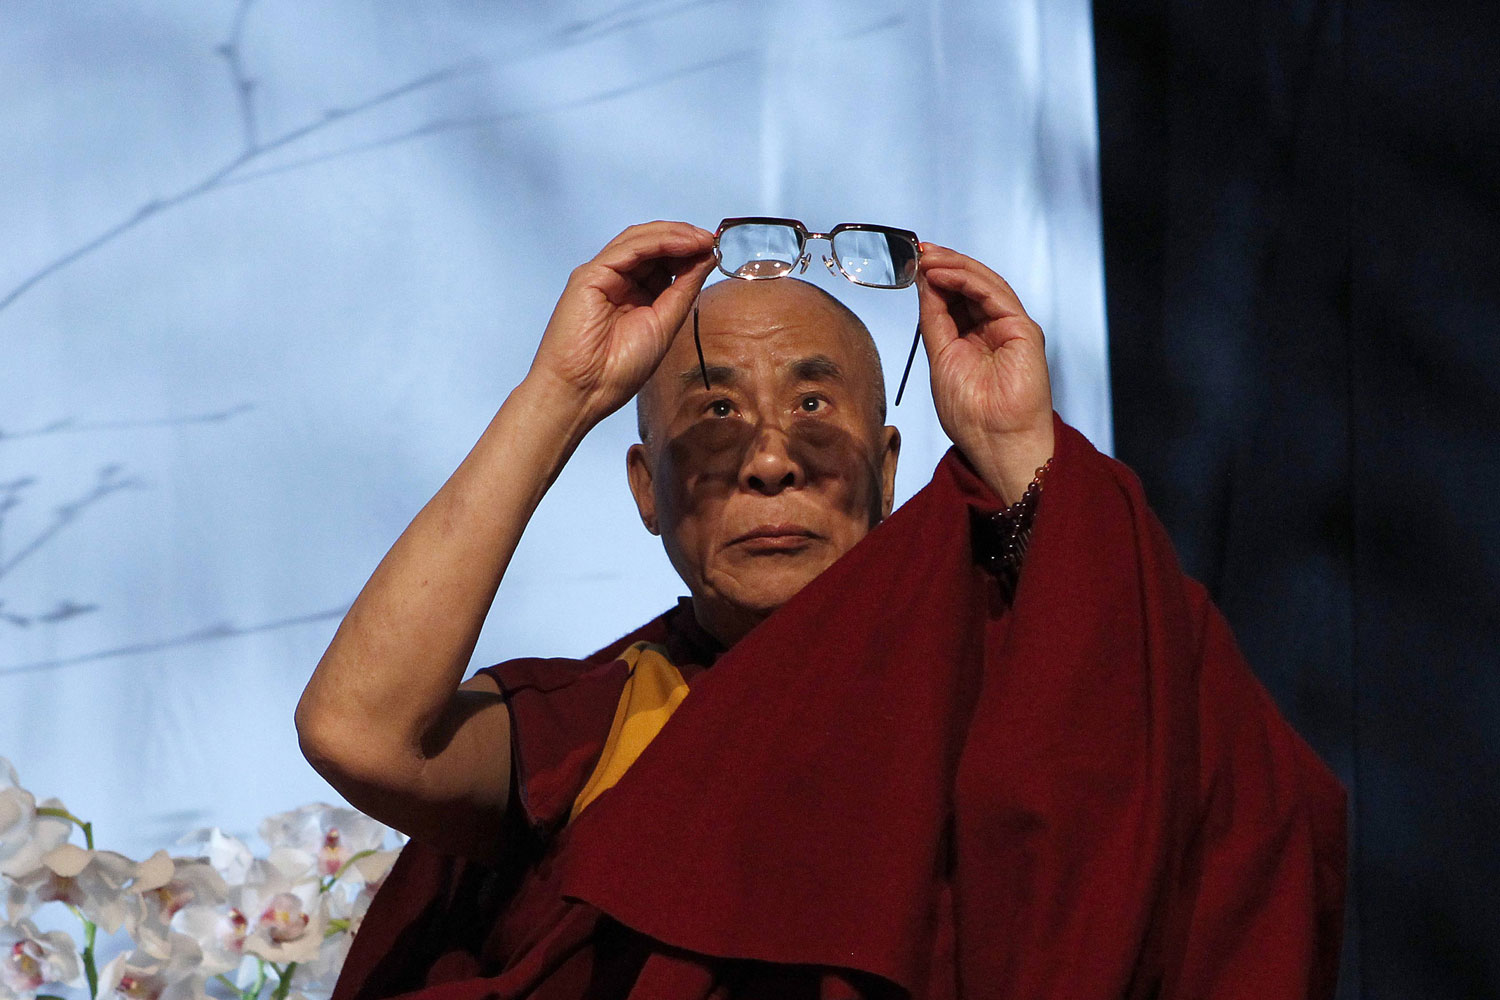 April 13, 2011. Tibet's exiled spiritual leader, the Dalai Lama, cleans his glasses during a press conference in Dublin. The Dalai Lama is on a two-day visit to Ireland.